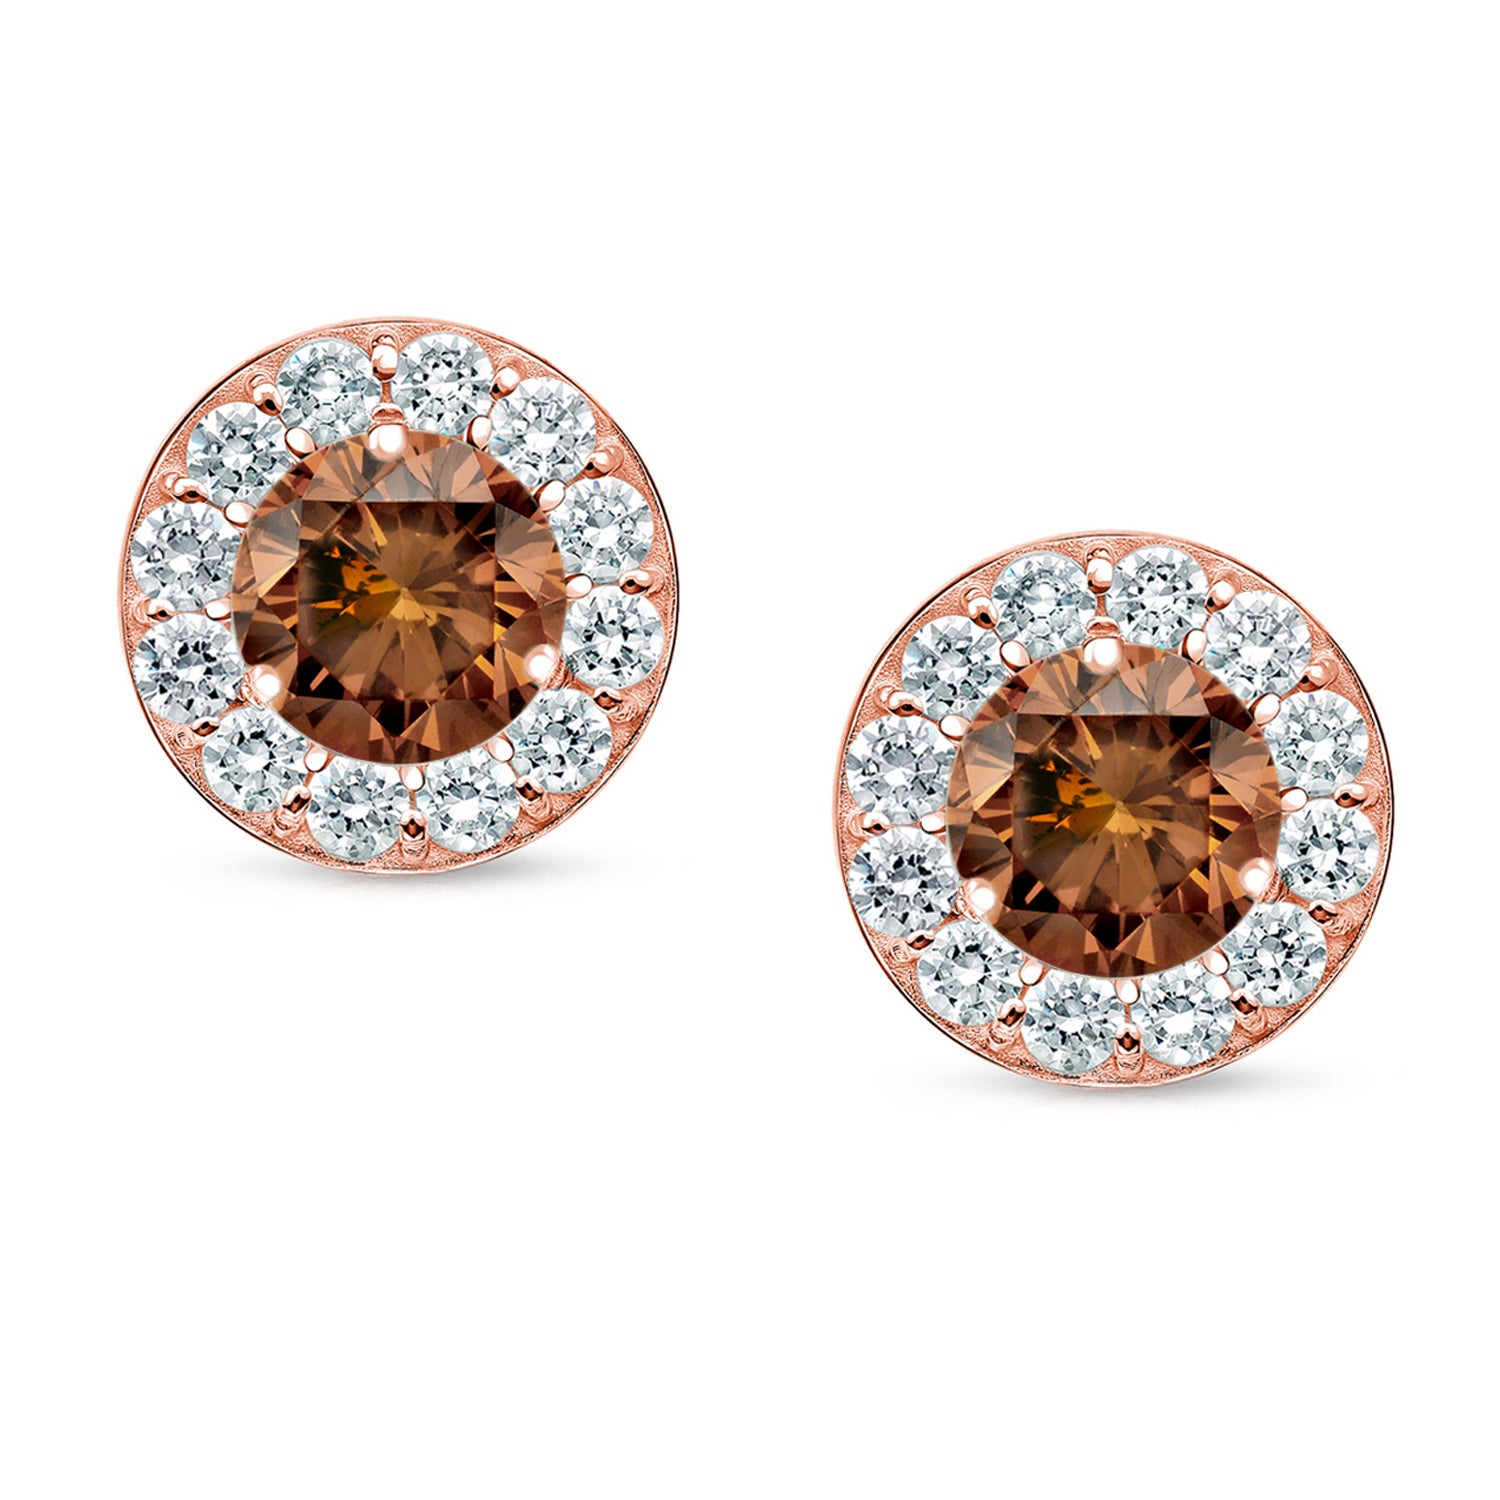 jewelry diamond satomi and earrings pearl gallery in kawakita lyst twin gold stud brown